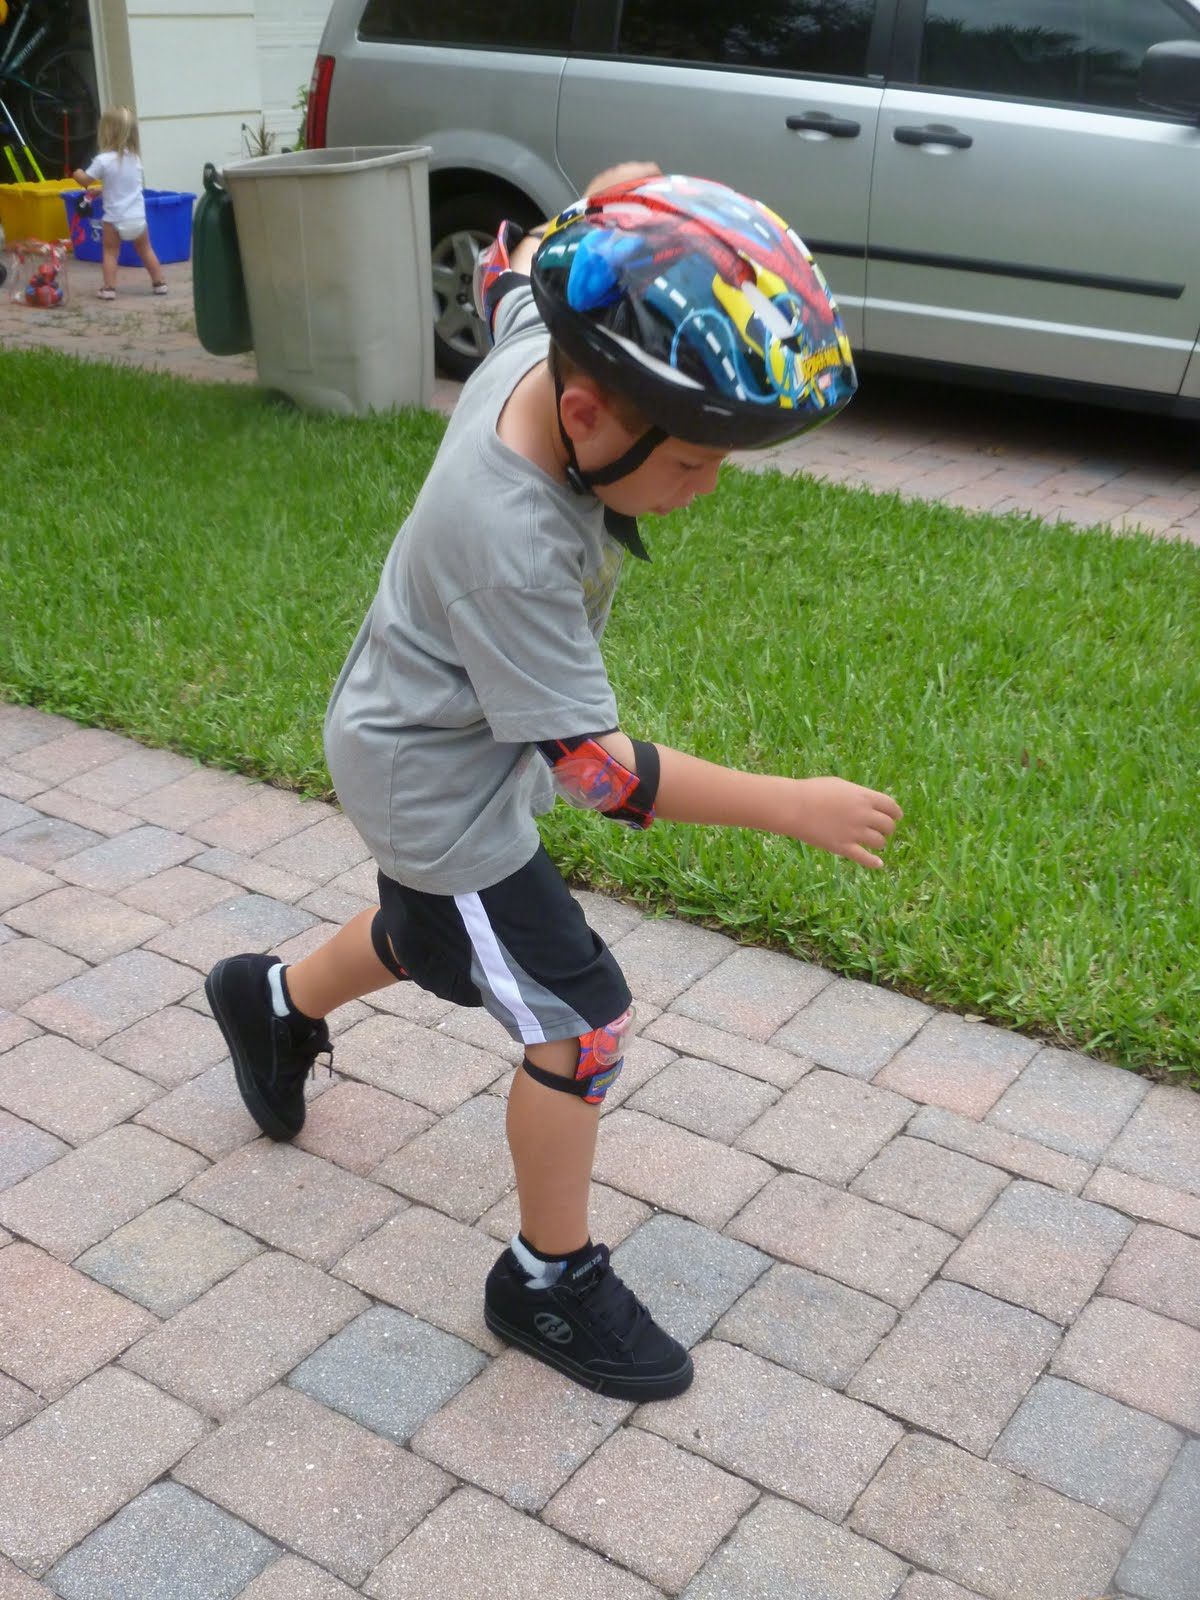 Heely skate shoes reviews - It Does Take Sometime To Get The Hang Of How To Skate My Son Really Enjoys Skating In His Heelys He Wants To Wear Them Everywhere